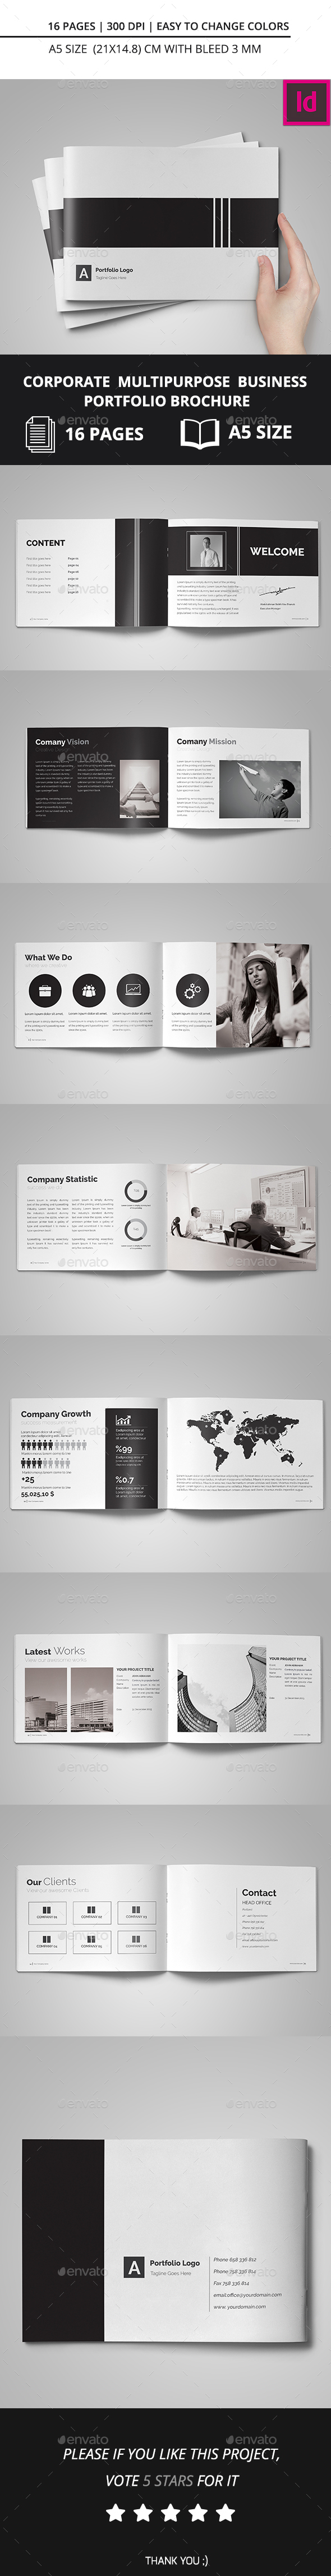 Corporate Multipurpose Business Portfolio Brochure - Corporate Brochures